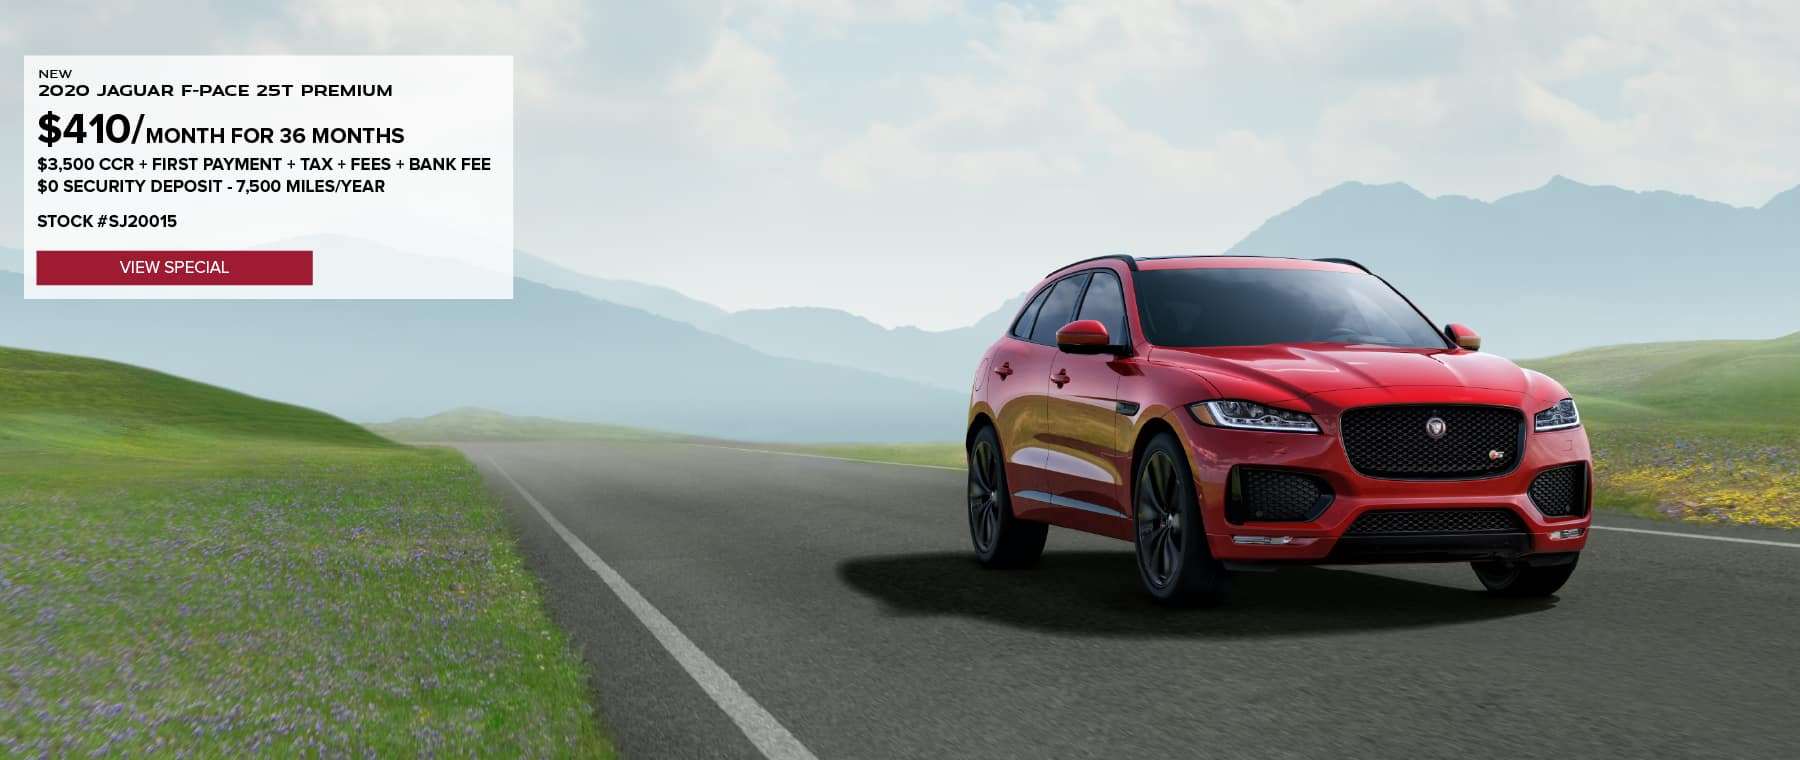 2020 JAGUAR F-PACE 25T PREMIUM. $410 PER MONTH FOR 36 MONTHS. $3,500 CCR PLUS TAXES AND TITLE. $0 SECURITY DEPOSIT. 7,500 MILES PER YEAR. VIEW SPECIAL. RED JAGUAR F-PACE DRIVING DOWN ROAD IN VALLEY.